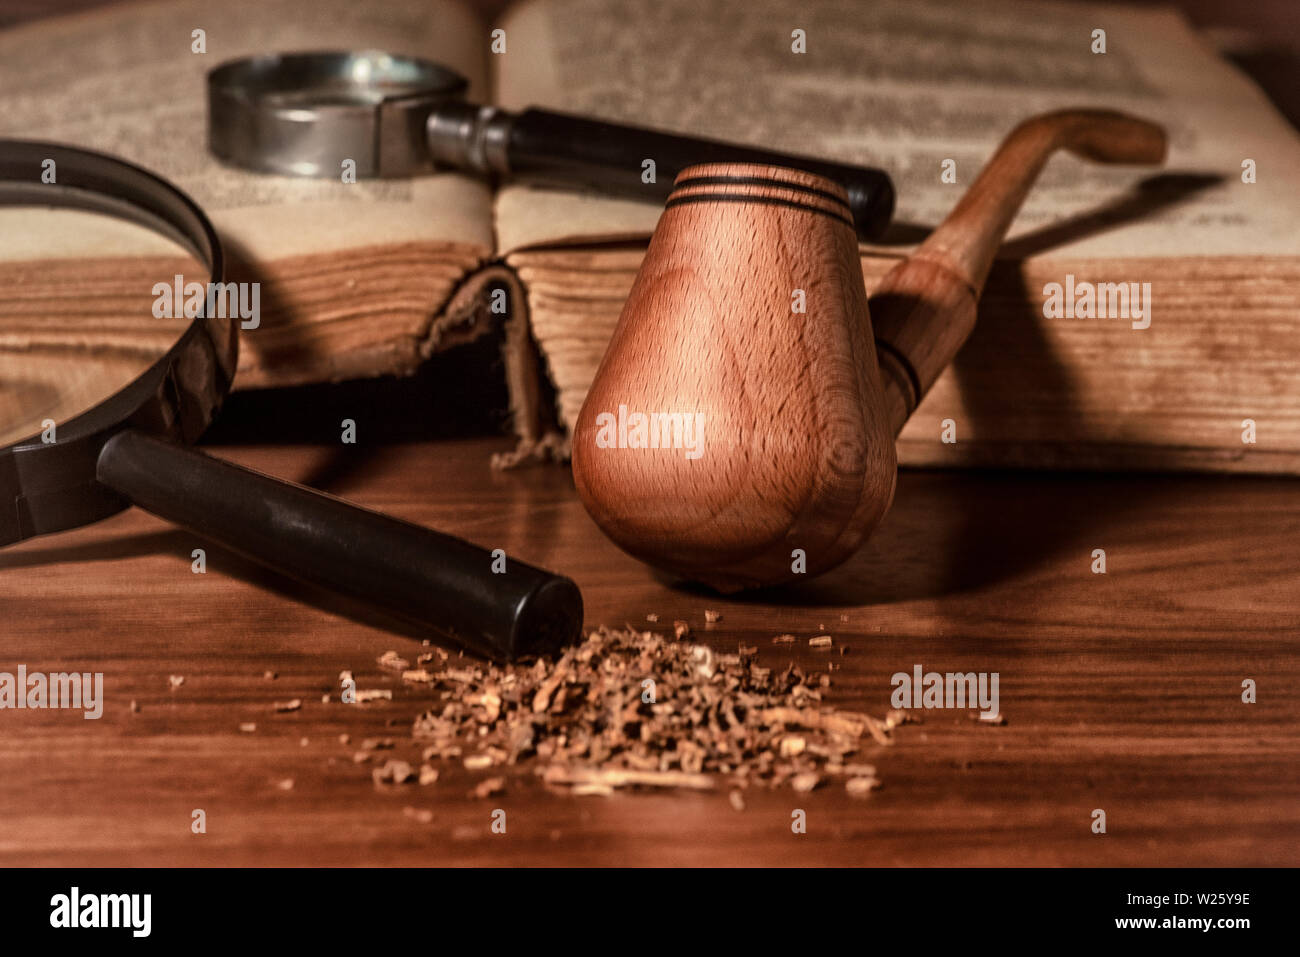 Wooden pipe with smoke on heap of chopped dried tobacco leaves against black background. - Stock Image